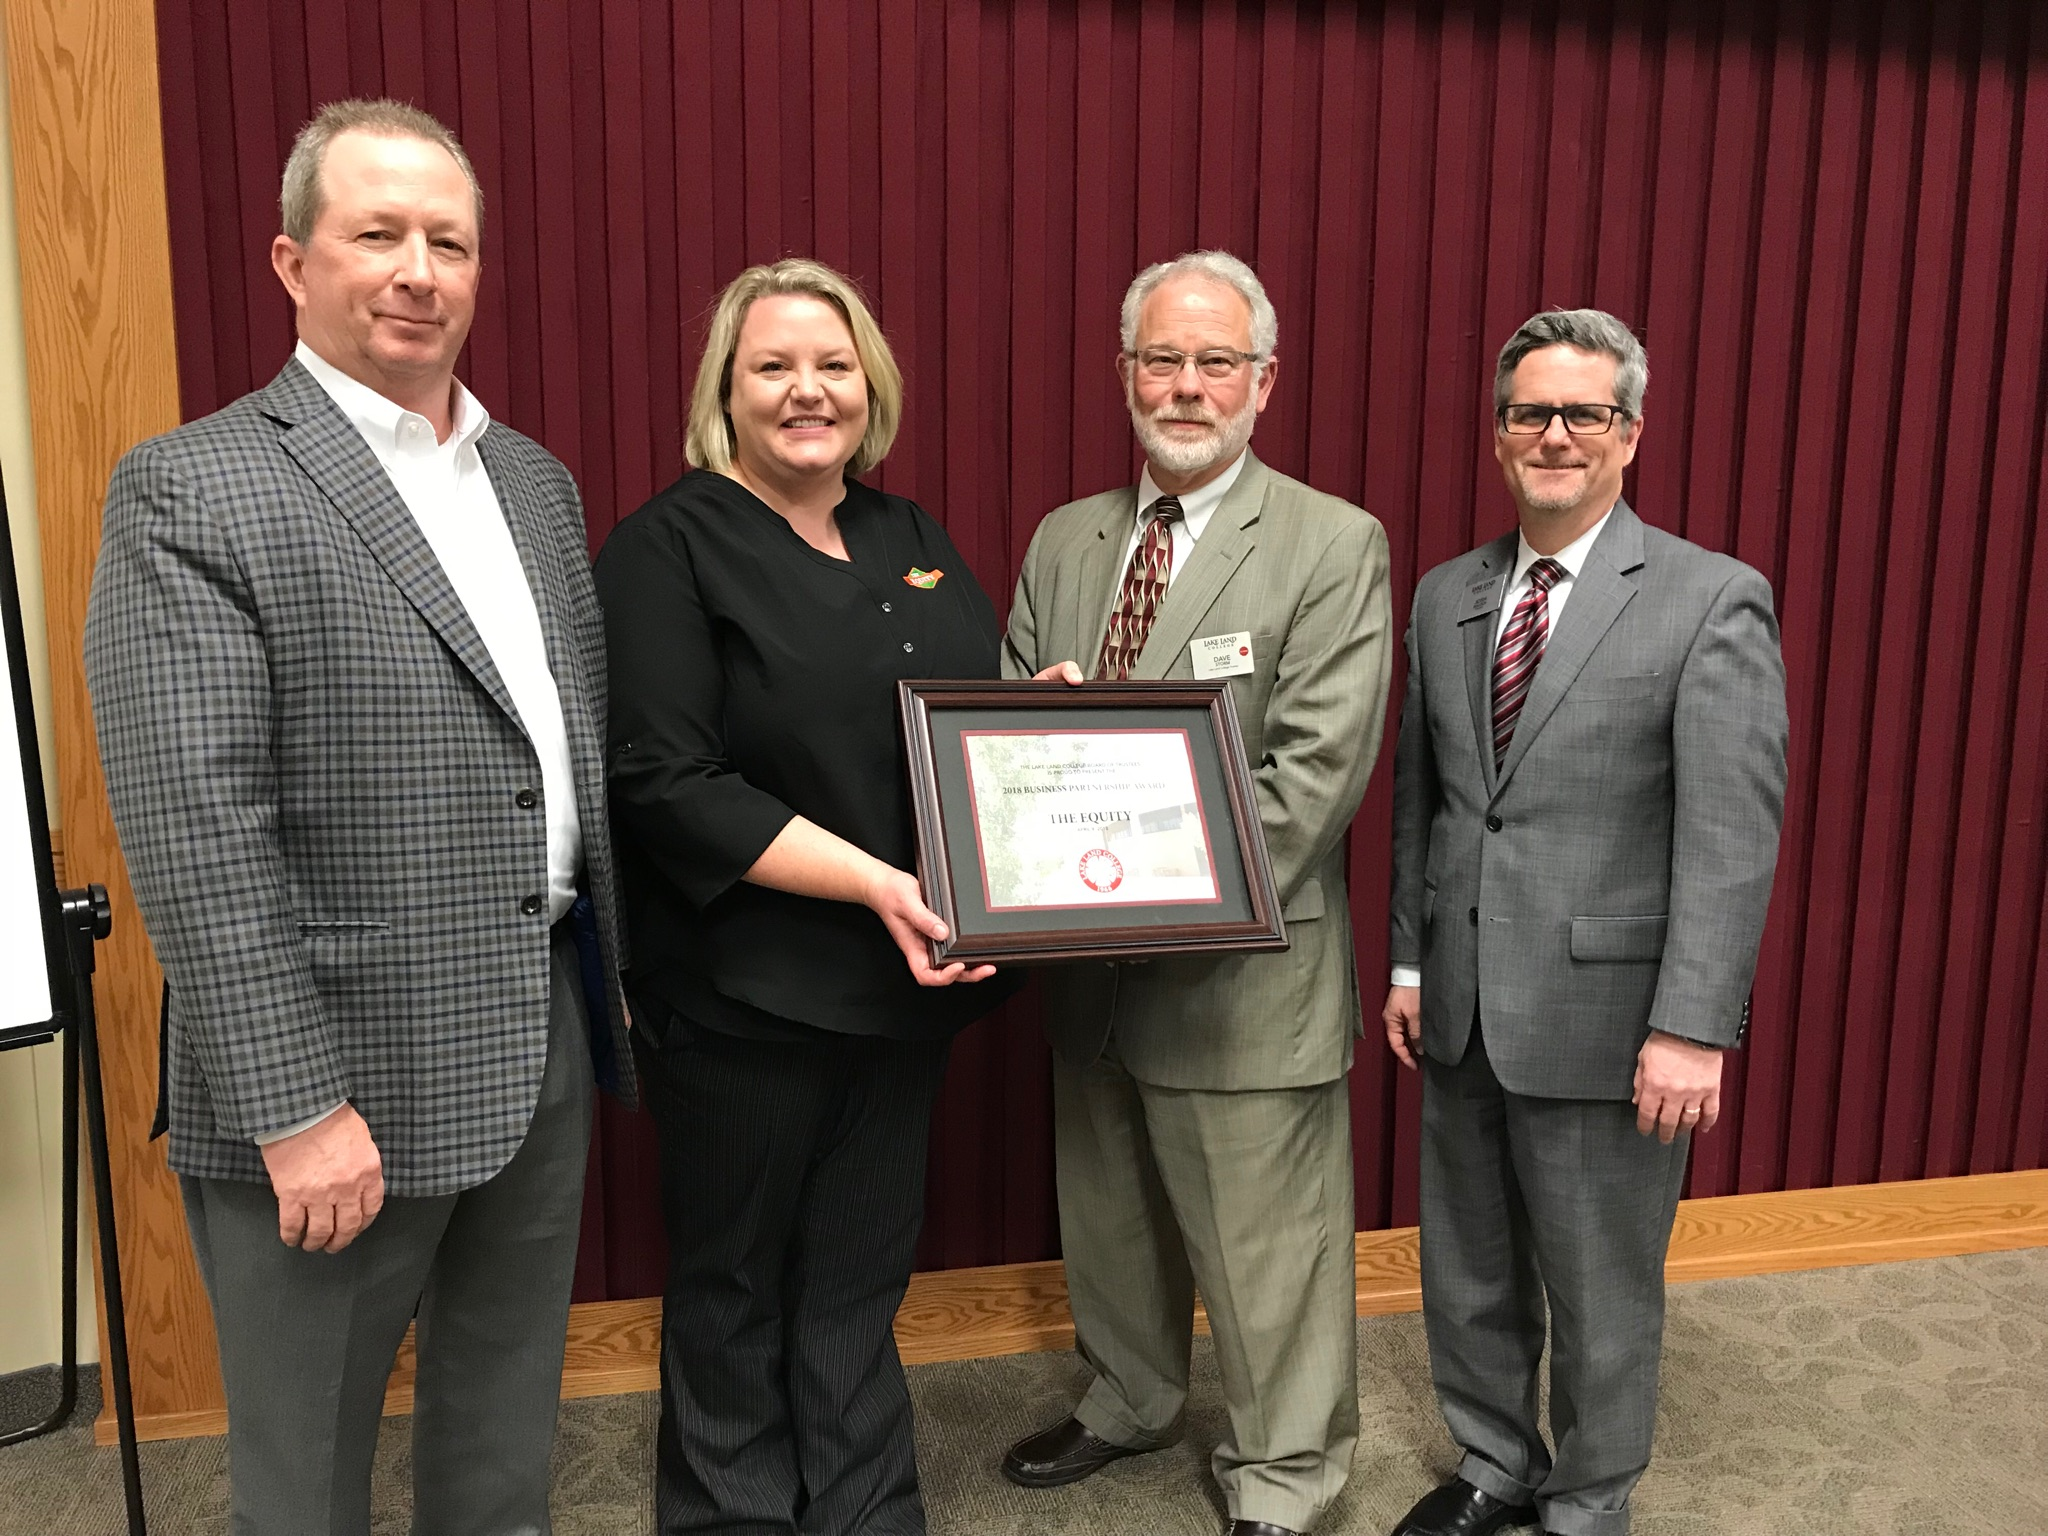 Lake Land College's Business Partnership Award presented to The Equity